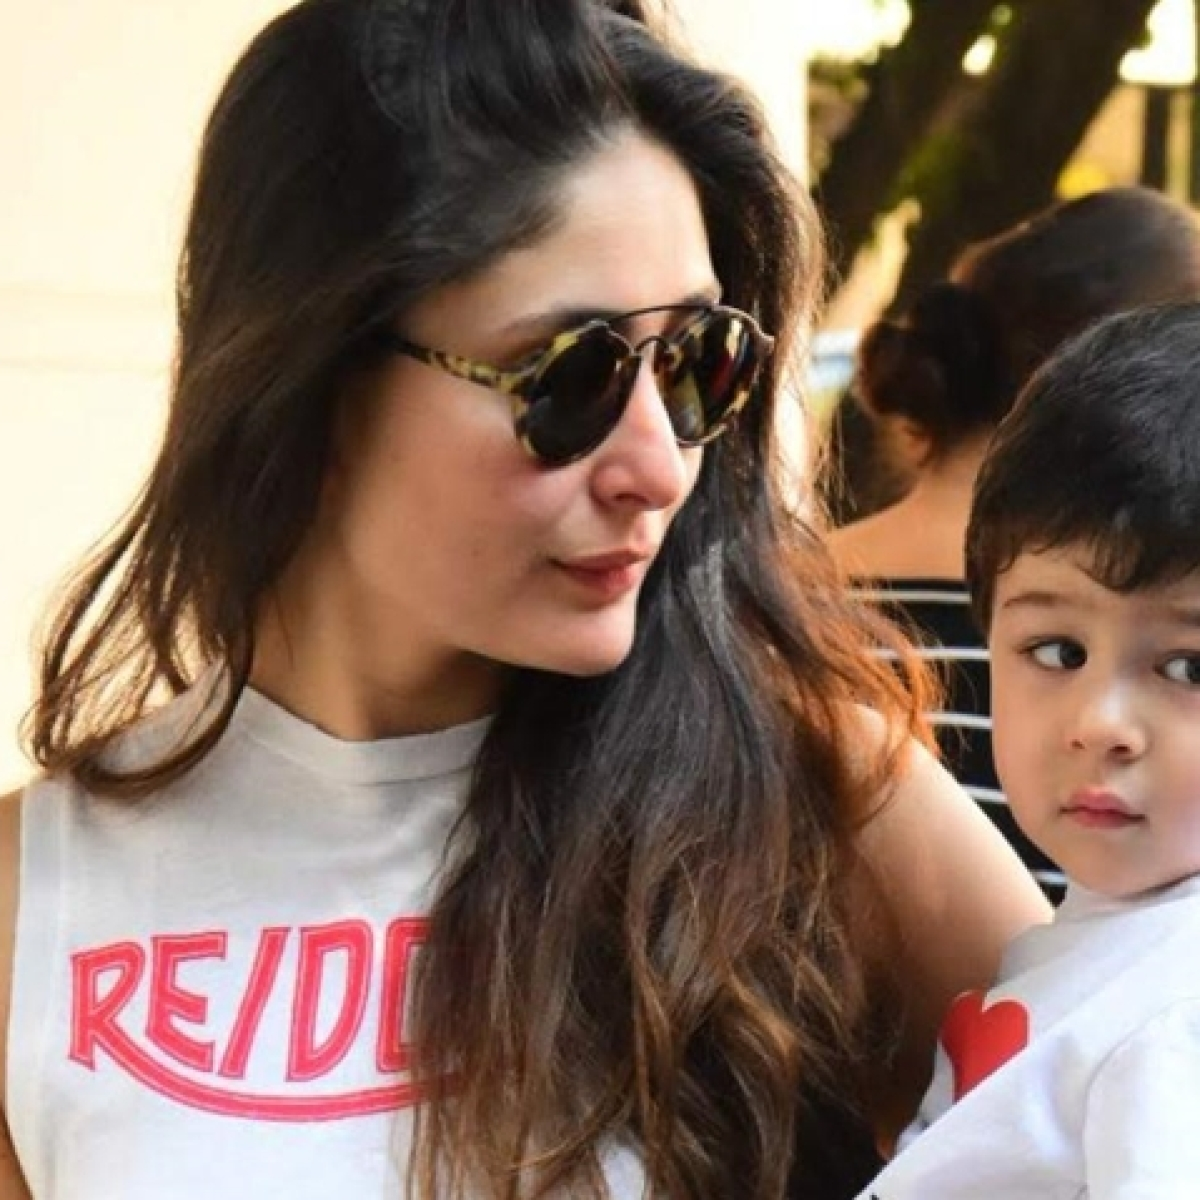 Kareena Kapoor Khan reflects on son Taimur Ali Khan's name controversy: 'It scarred me deeply as mother'